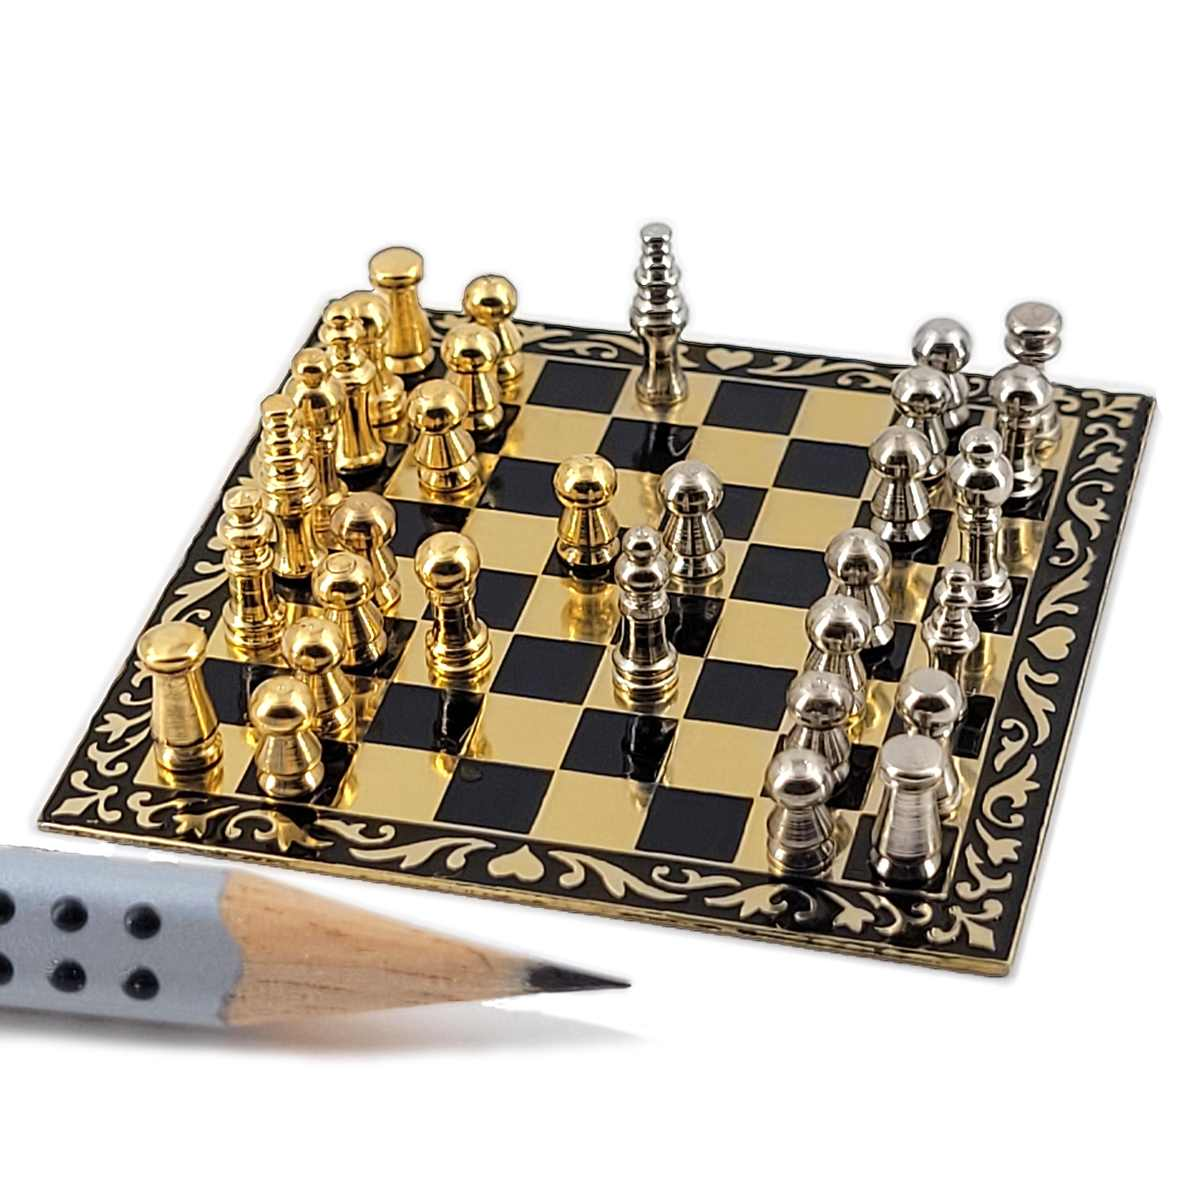 Chessboard with chess figures